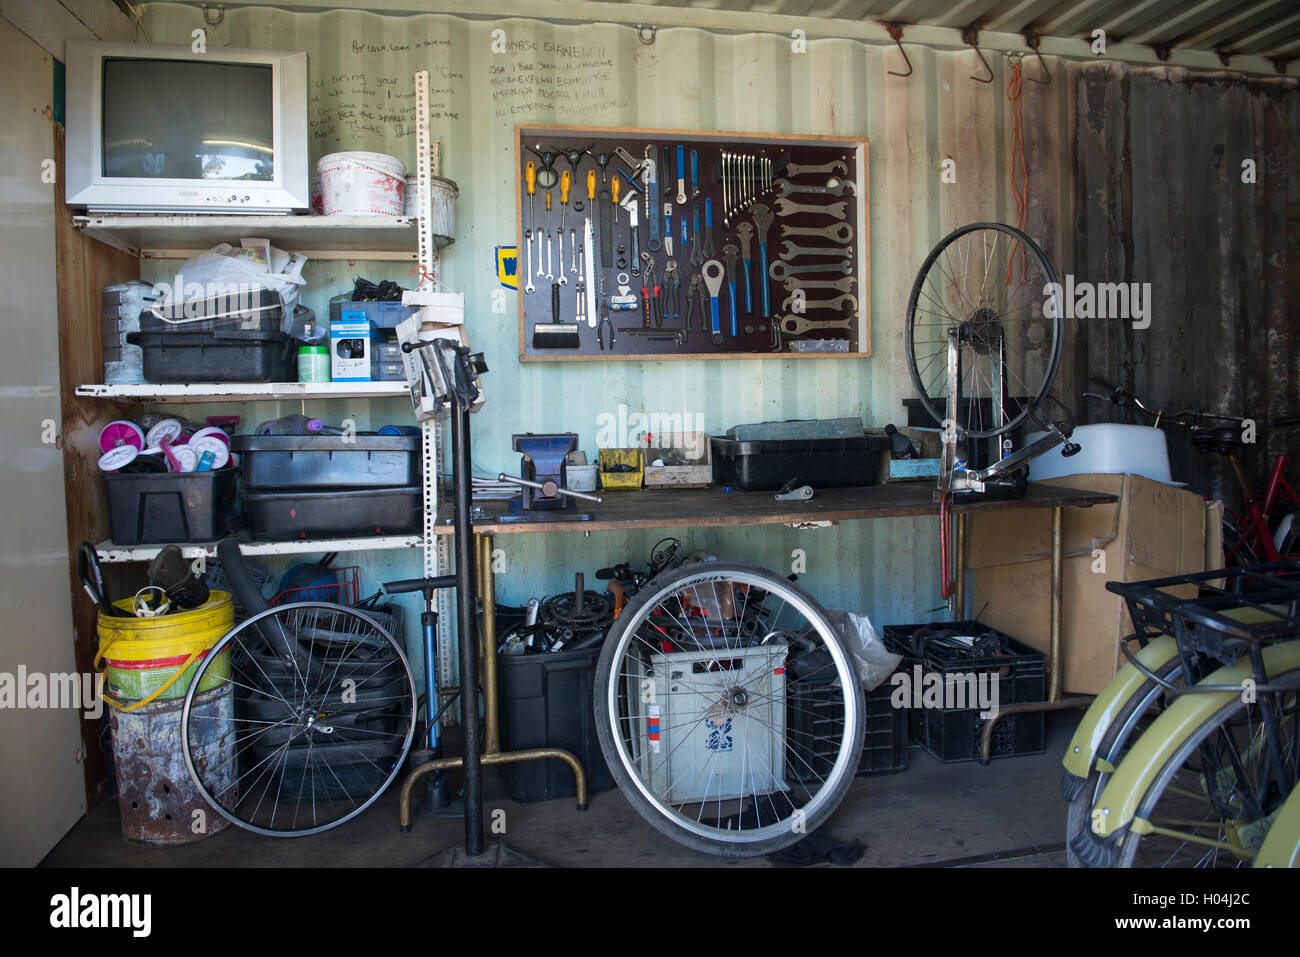 Workbench of a bicycle mechanic with tools arranged on a wall, Cape Town, South Africa - Stock Image